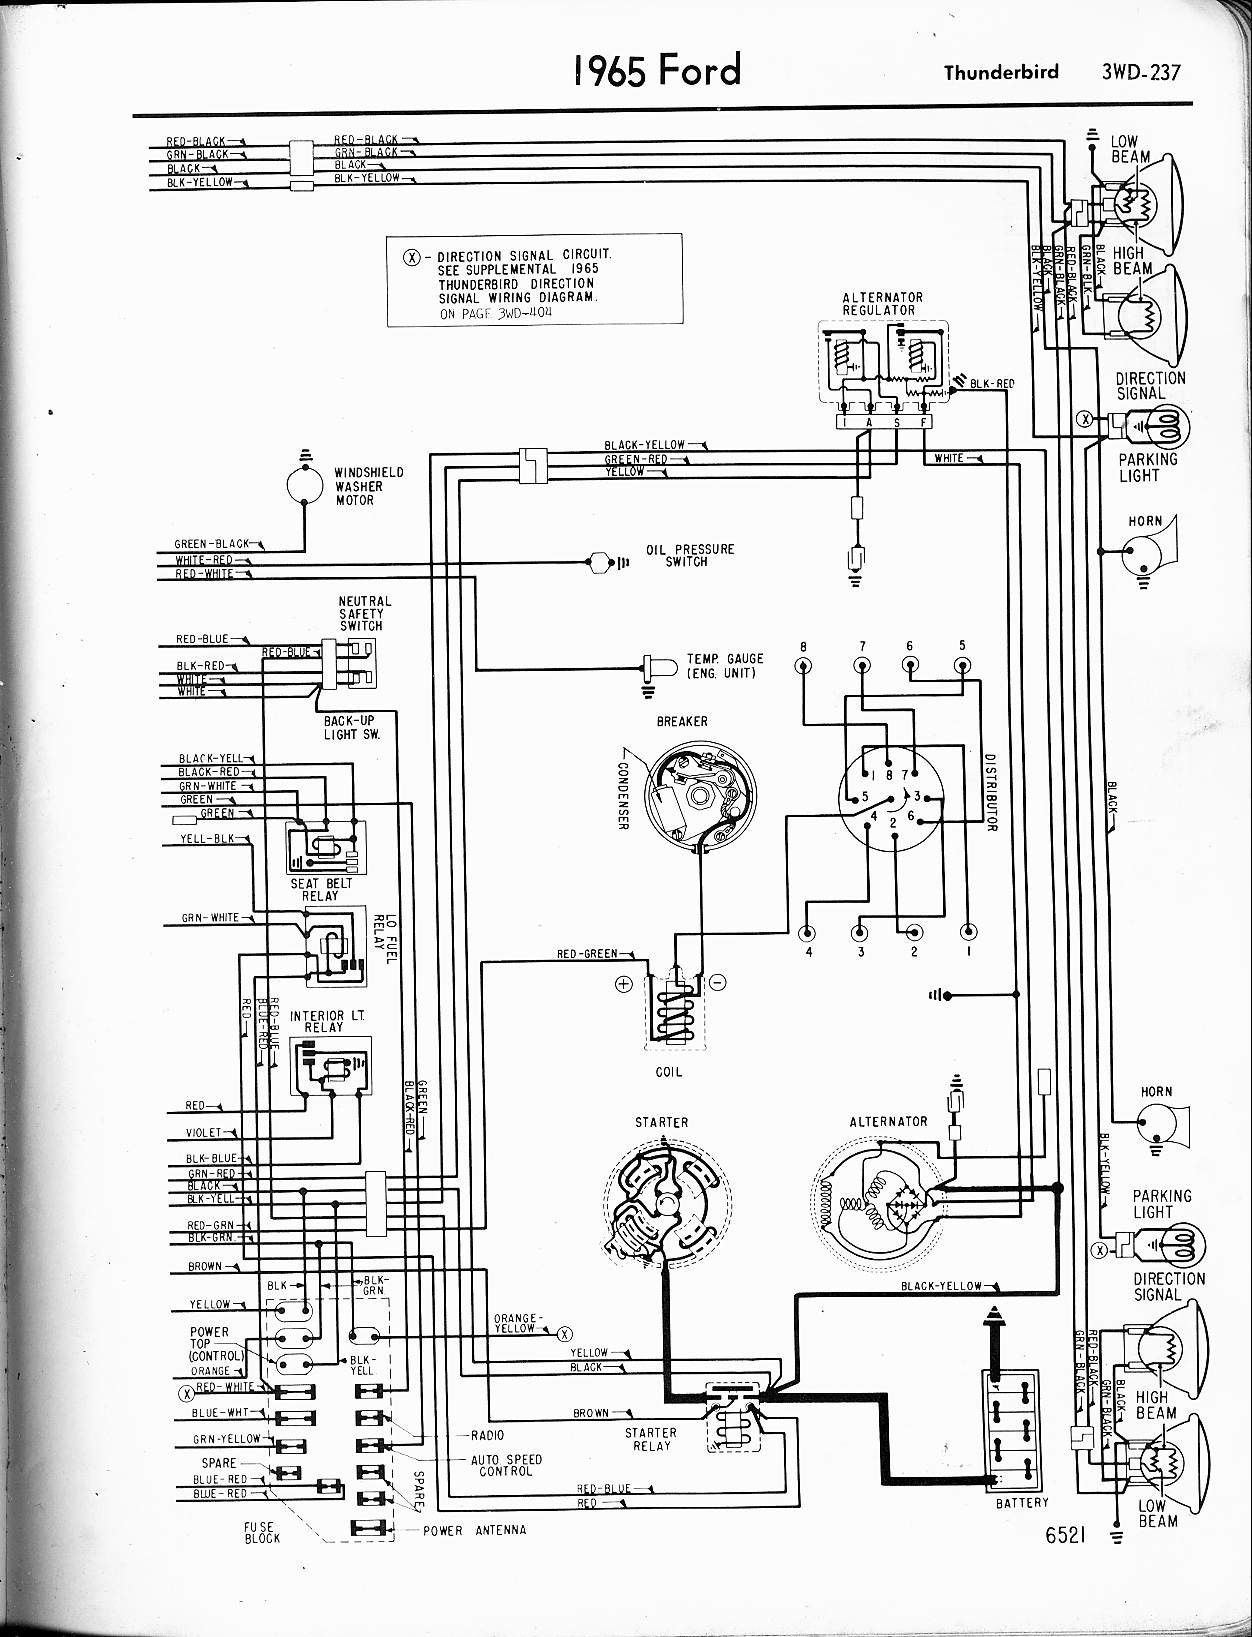 Ford F150 Wiring Diagram In 2020 Diagram Wire Ford Thunderbird